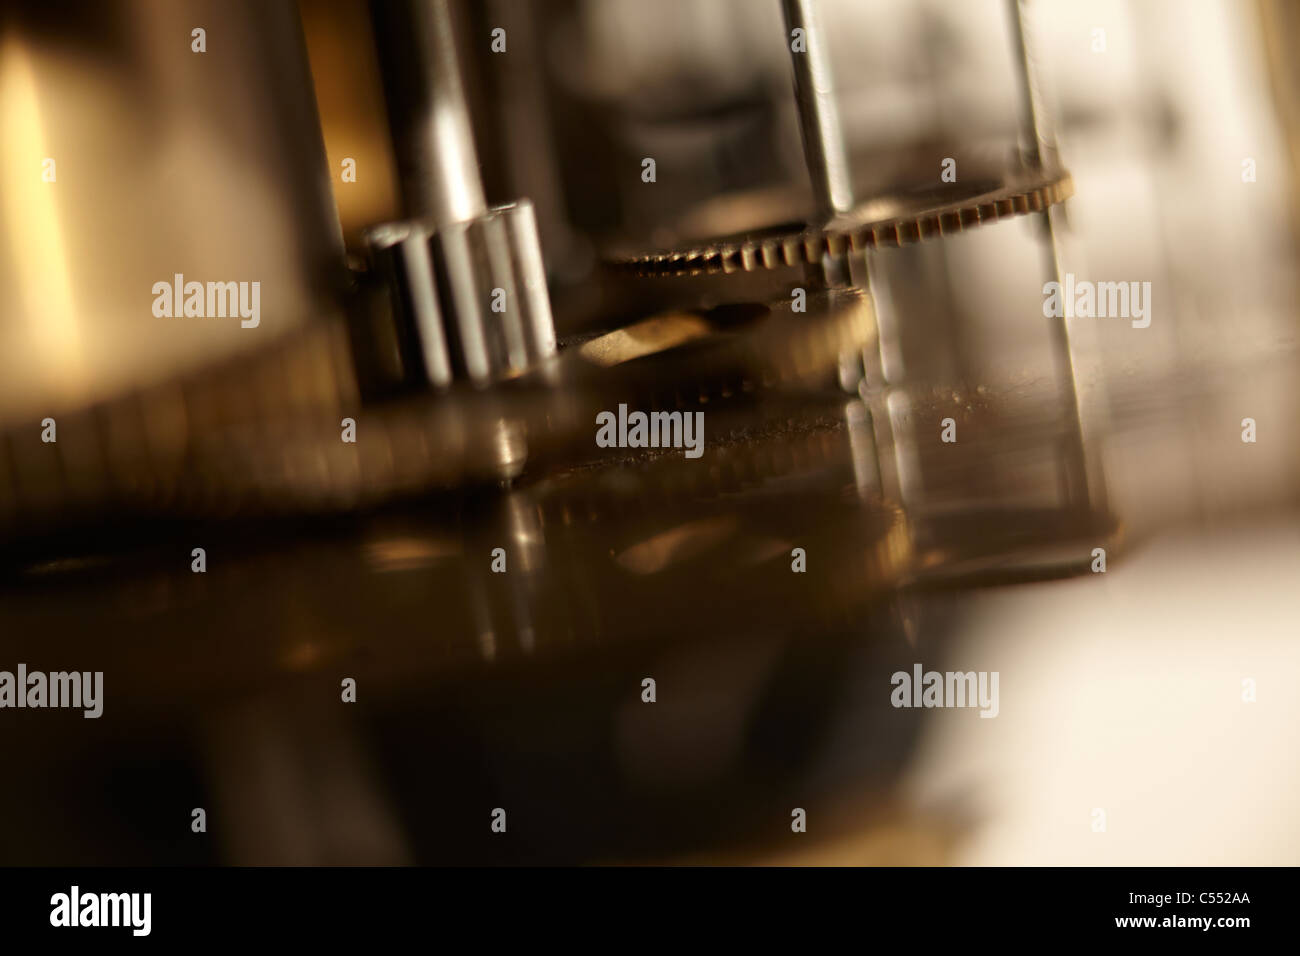 ANTIQUE CLOCK MECHANICAL MOVEMENT CLOSE UP OF COG WHEELS - Stock Image